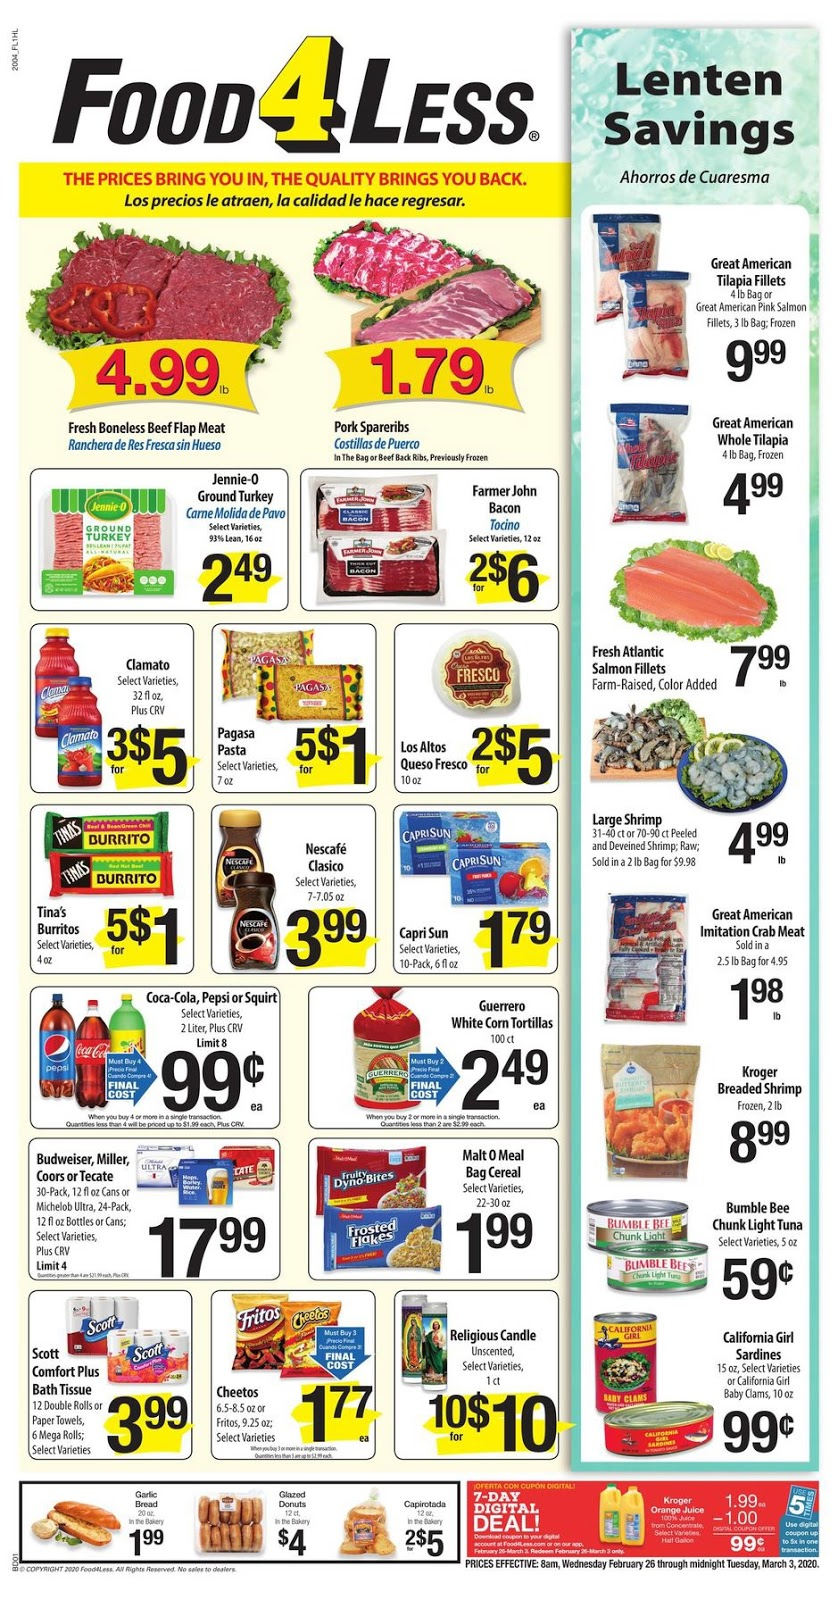 ⭐ Food 4 Less Ad 2/26/20 ⭐ Food 4 Less Weekly Ad February 26 2020